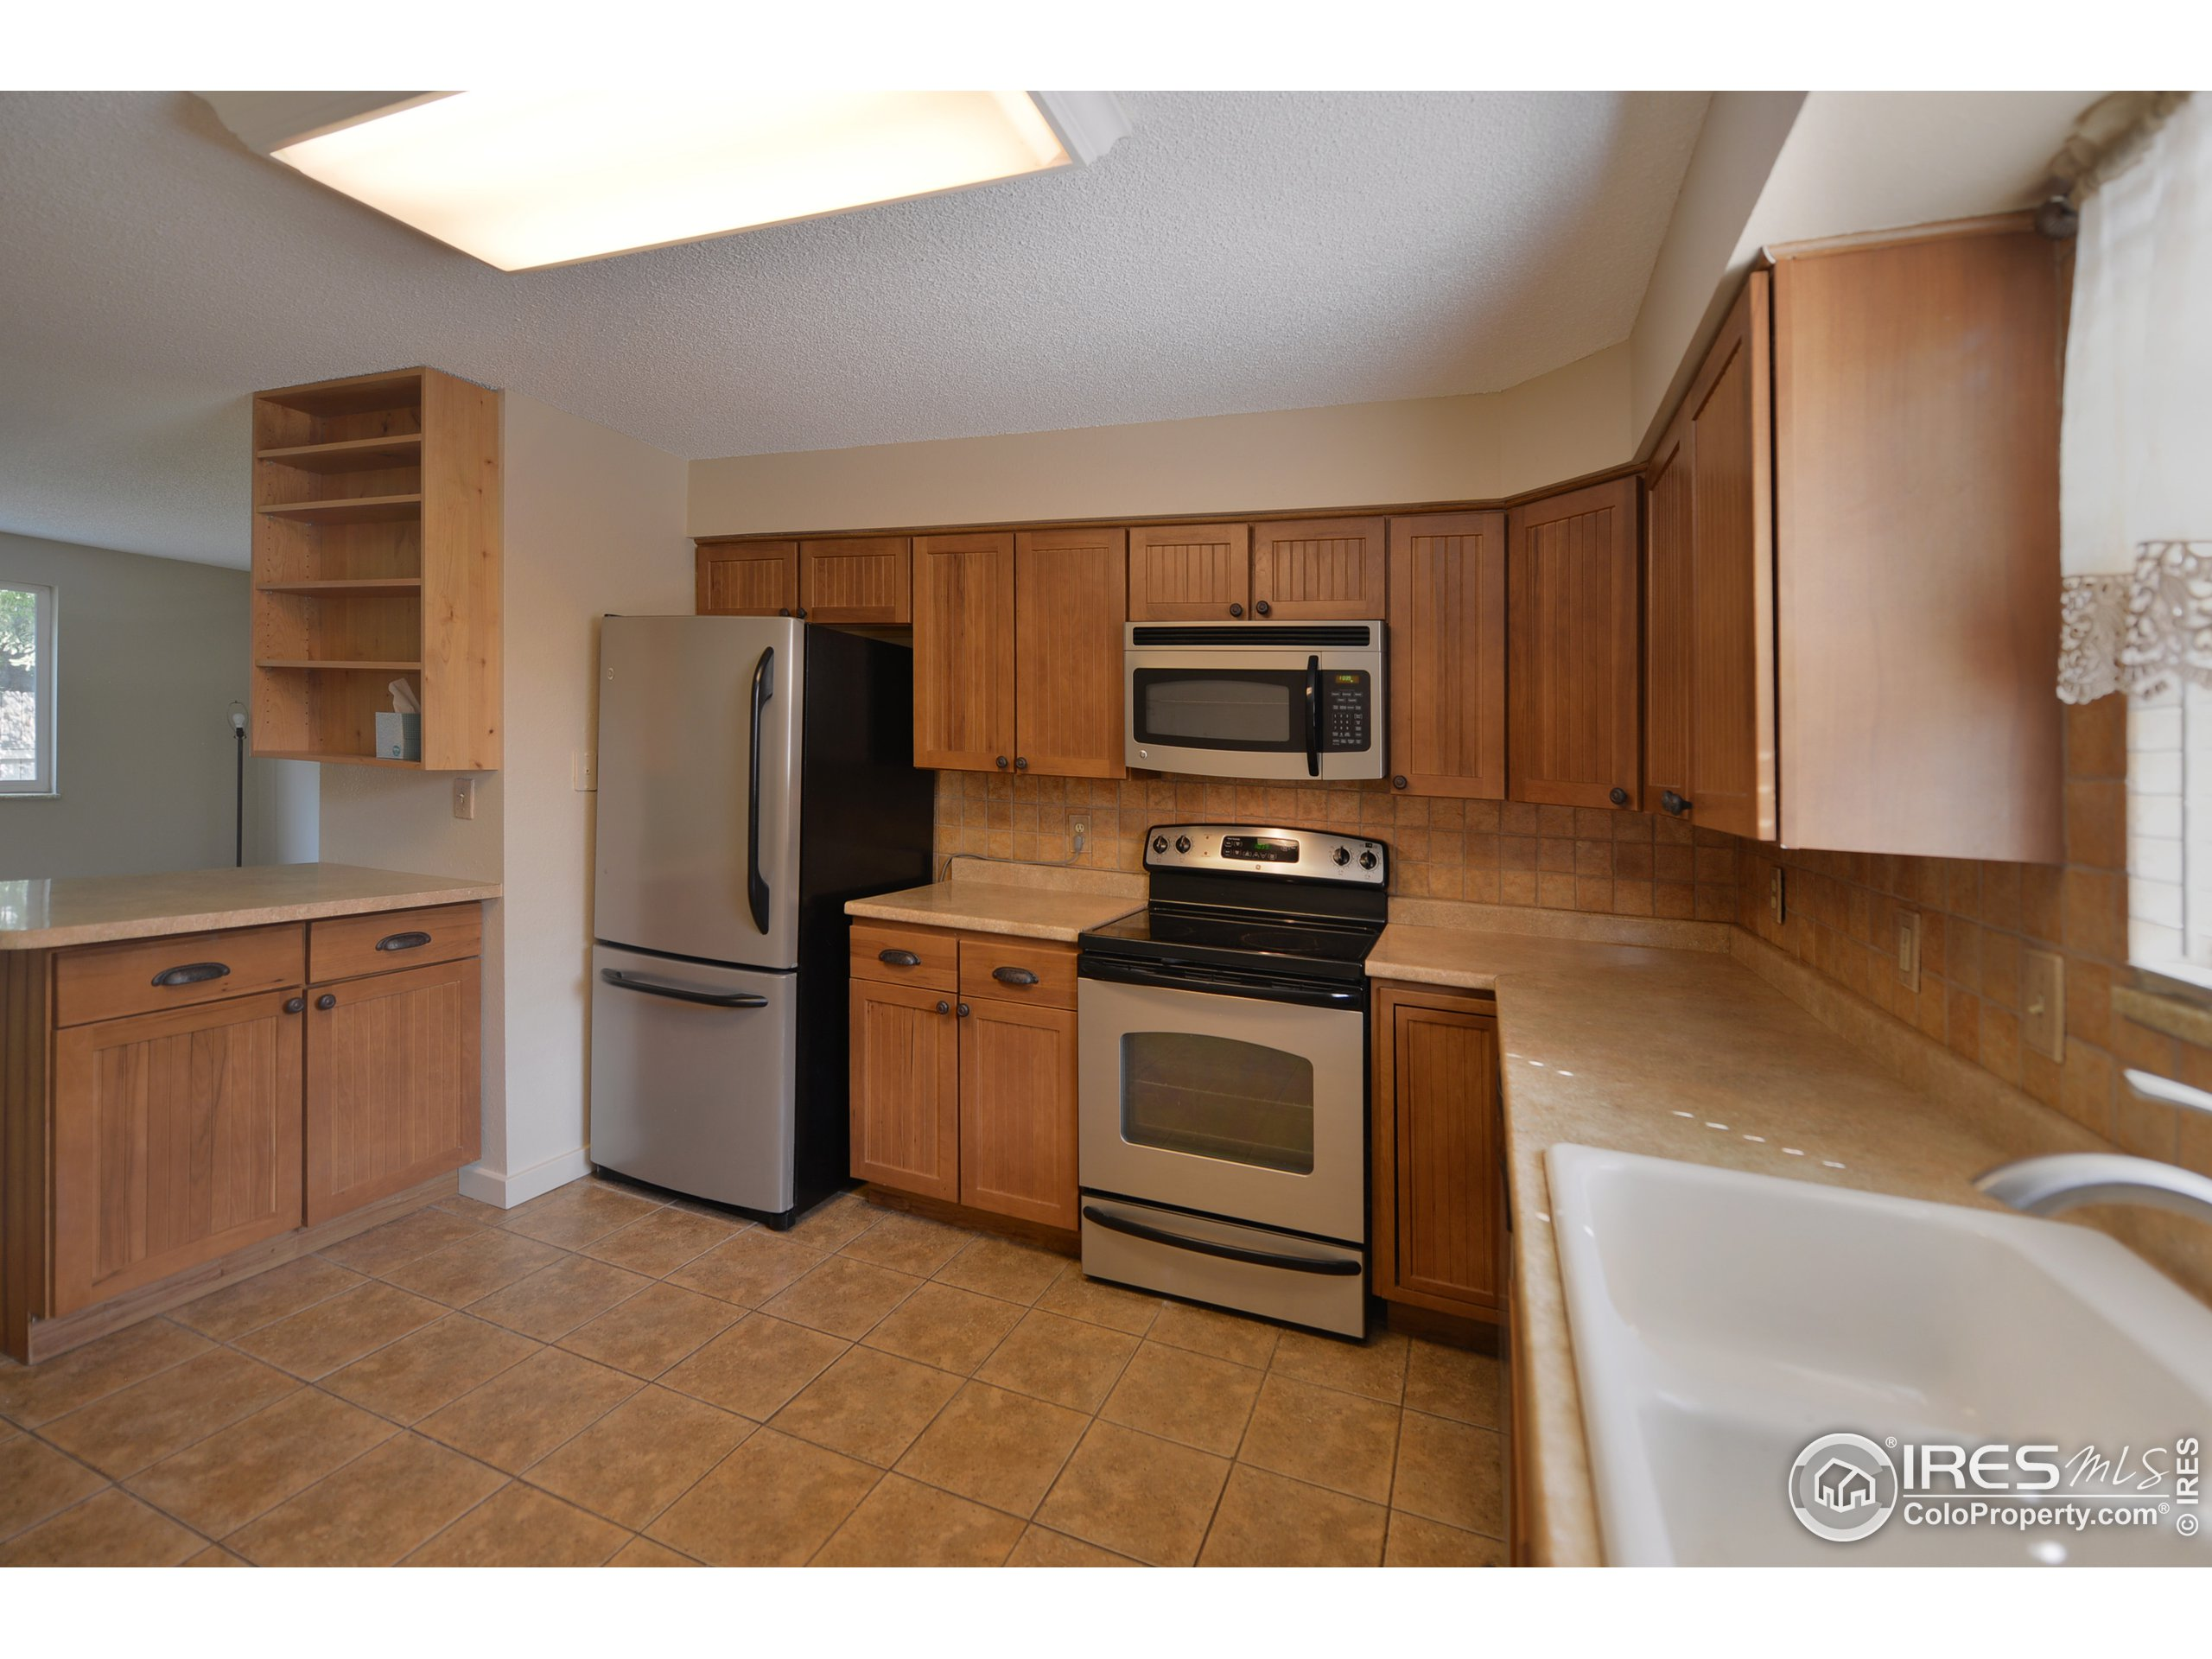 Fully updated too with tile flooring and new cabinetry.